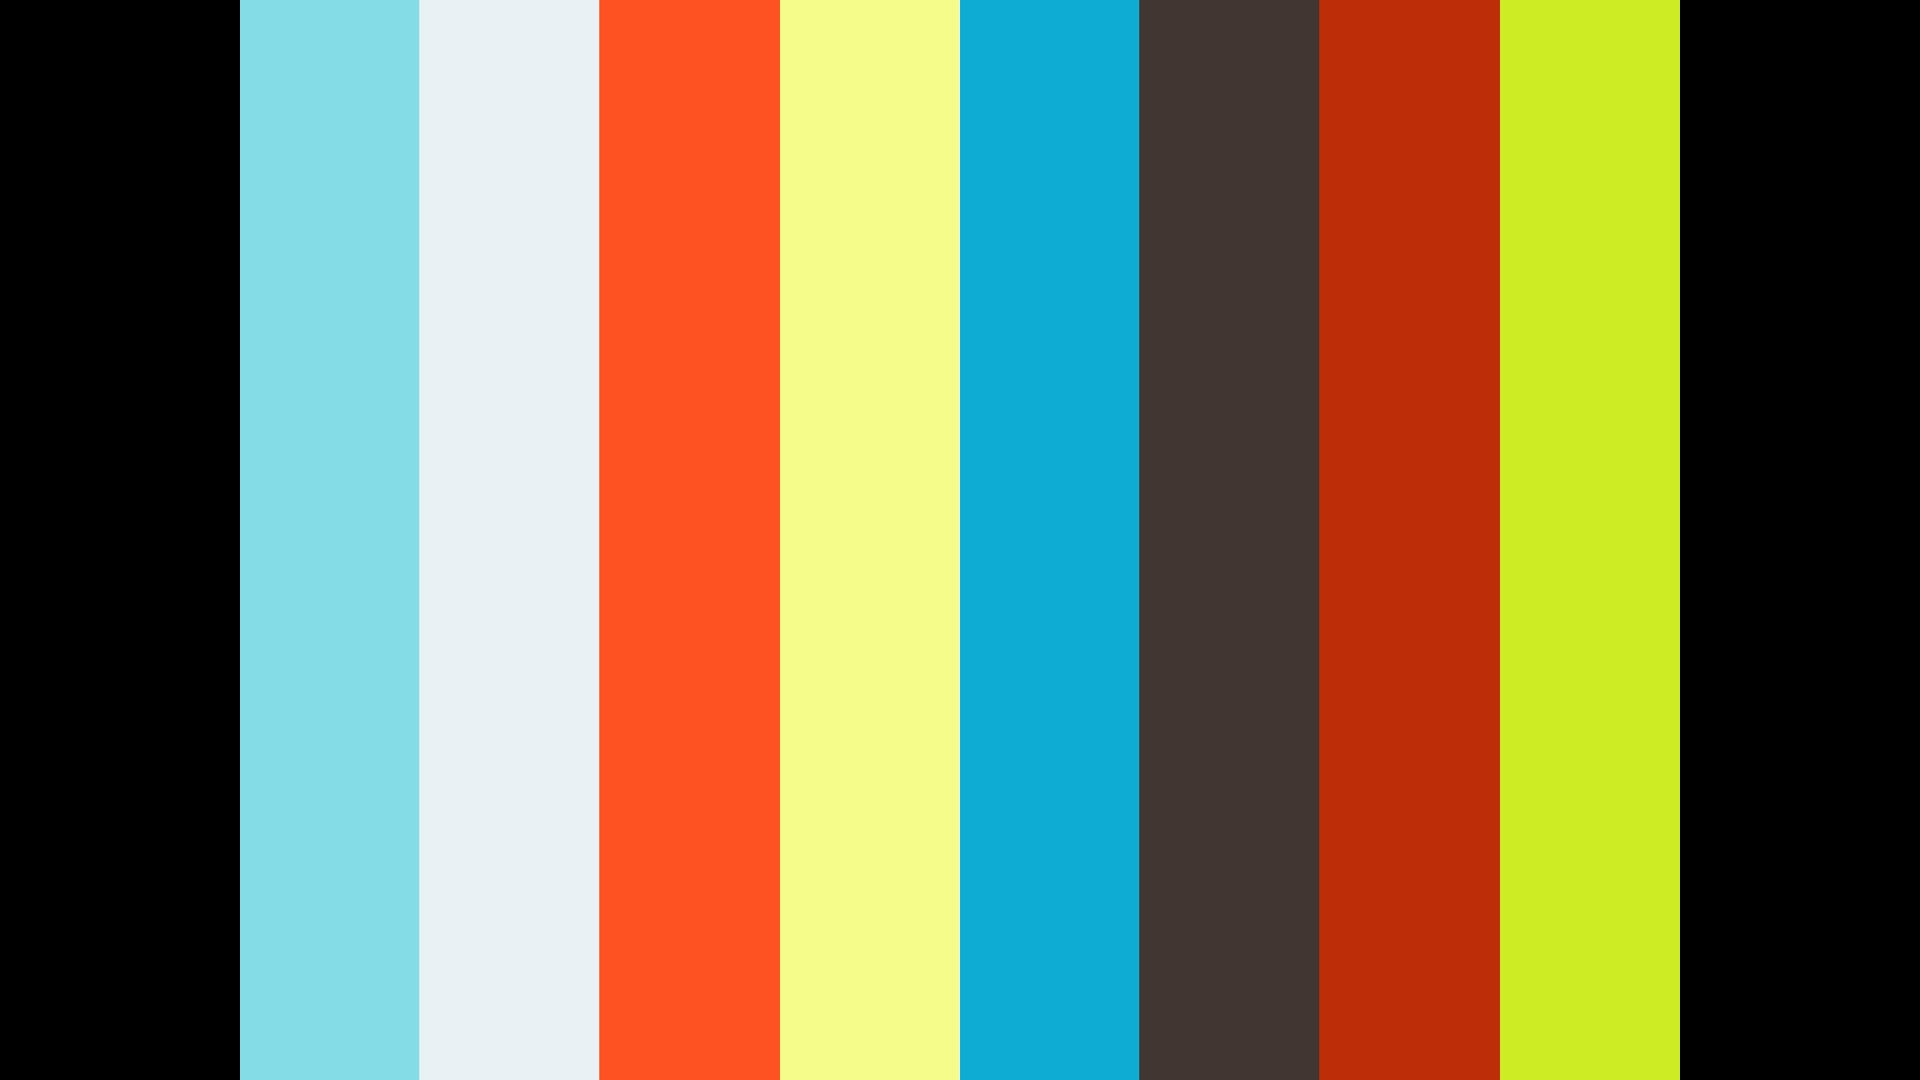 CSB/SJU Two Colleges. Together.